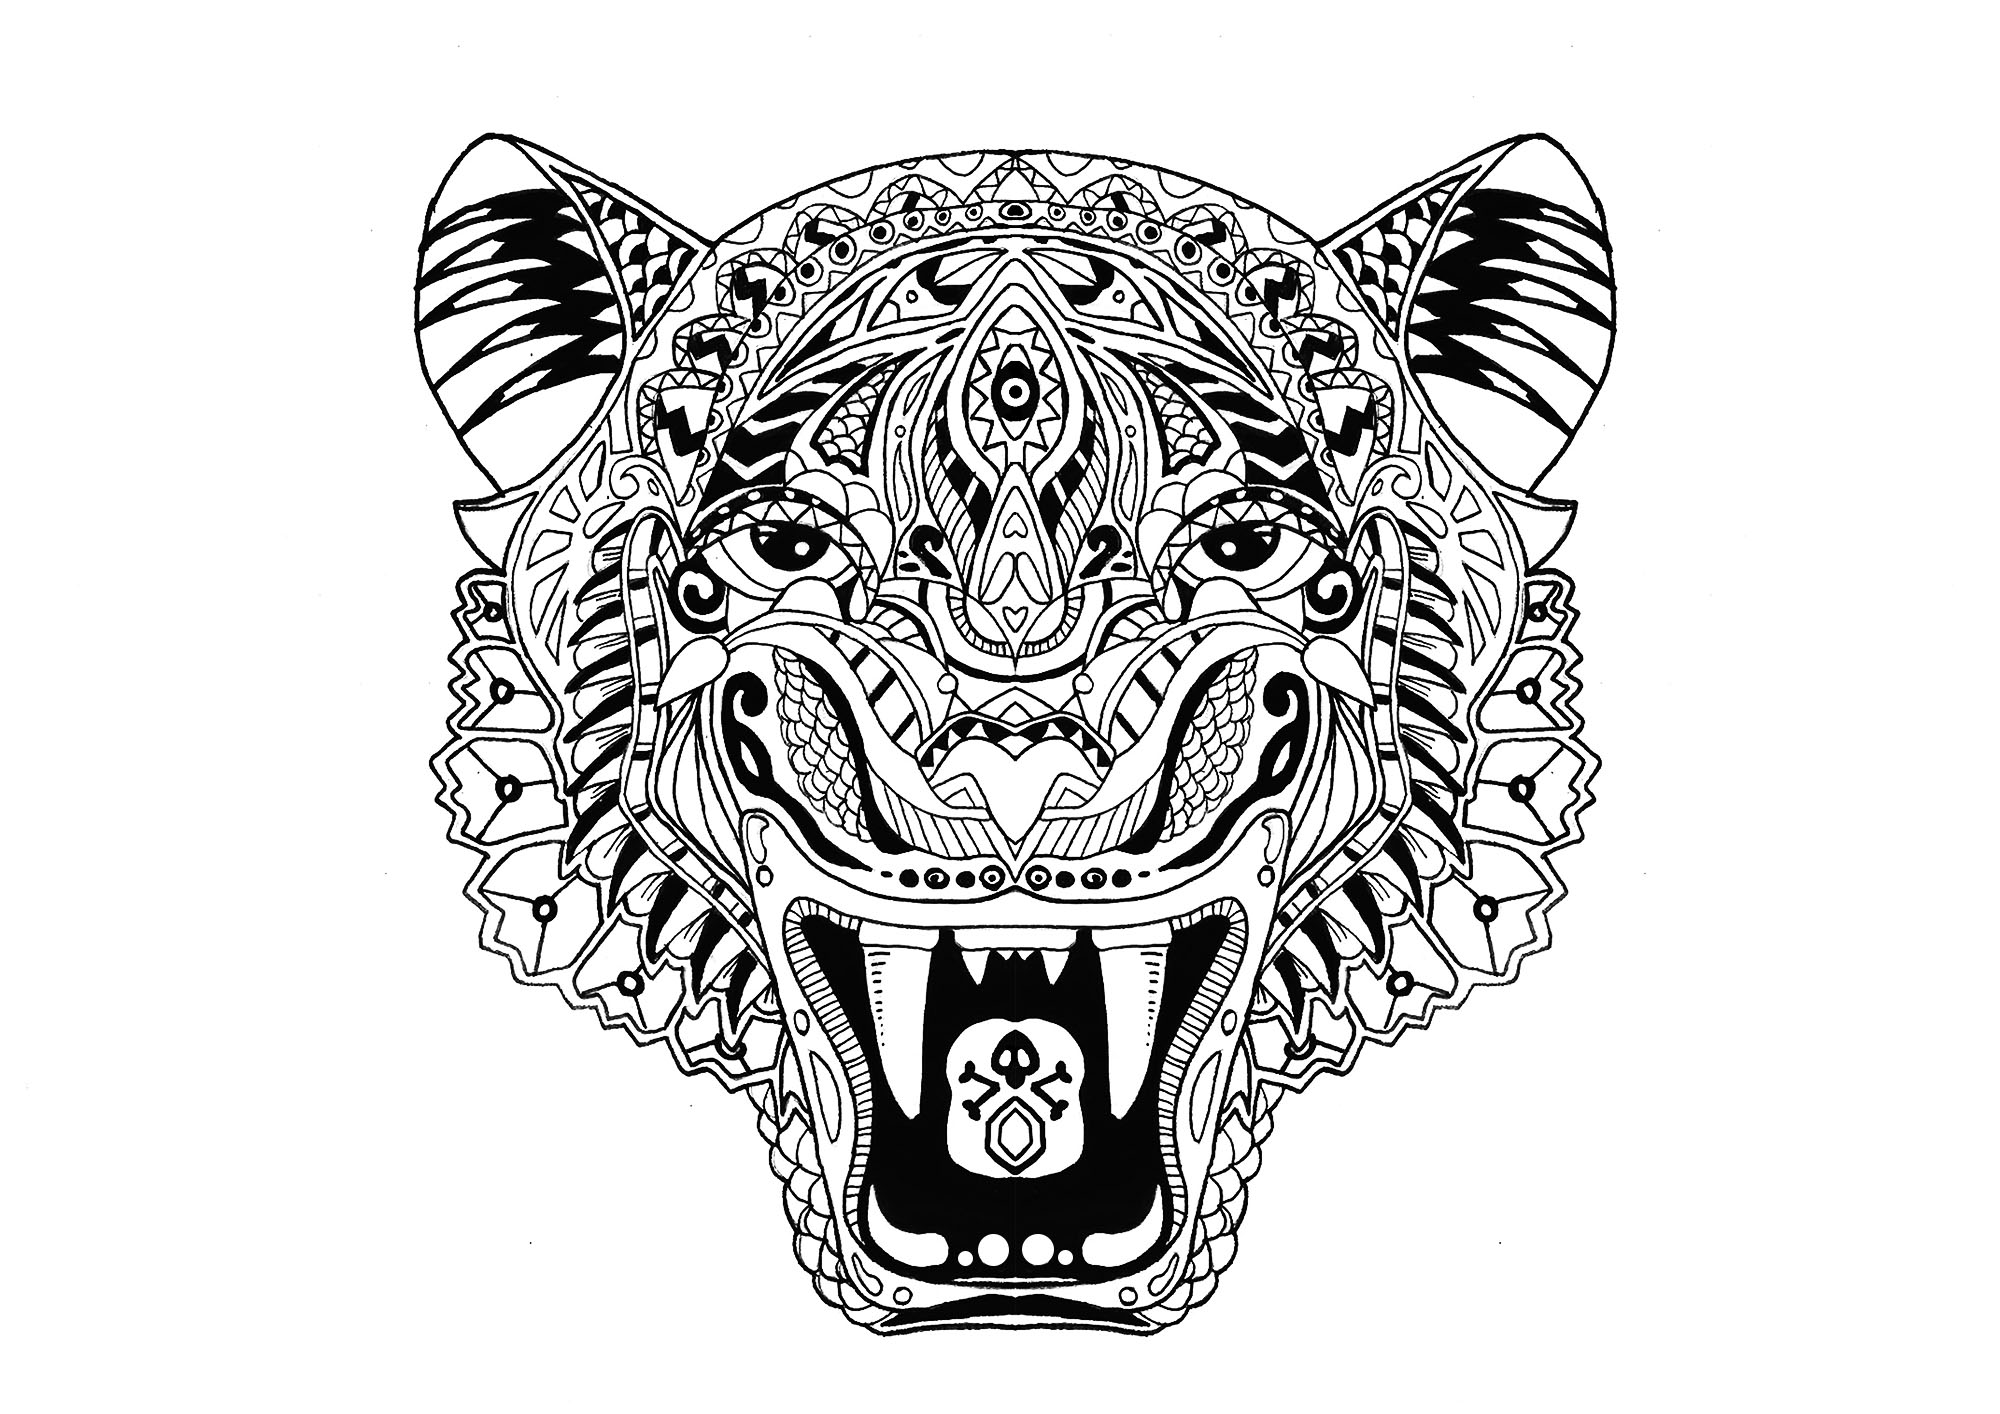 cute tiger face coloring pages baby tiger coloring pages at getdrawings free download tiger coloring face pages cute